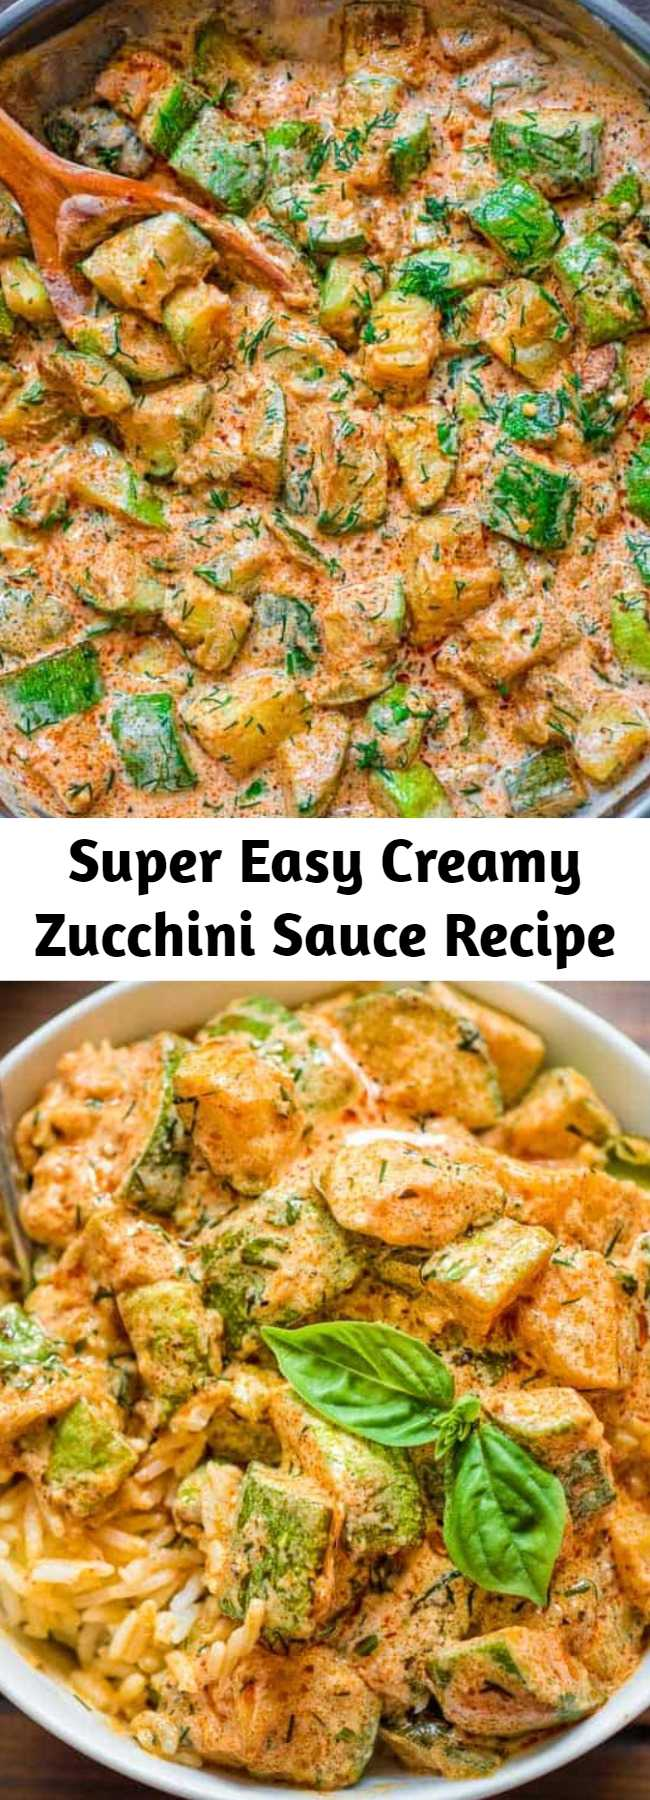 Super Easy Creamy Zucchini Sauce Recipe - This Creamy Zucchini Sauce is bursting with flavor! Made with paprika-roasted zucchinis, sour cream, garlic, and fresh herbs, it tastes great with pasta, over rice, or just with a slice of bread. #zucchini #dinner #lunch #whole30 #keto #ketosis #ketorecipe #vegetarian #mealprep #healthyrecipe